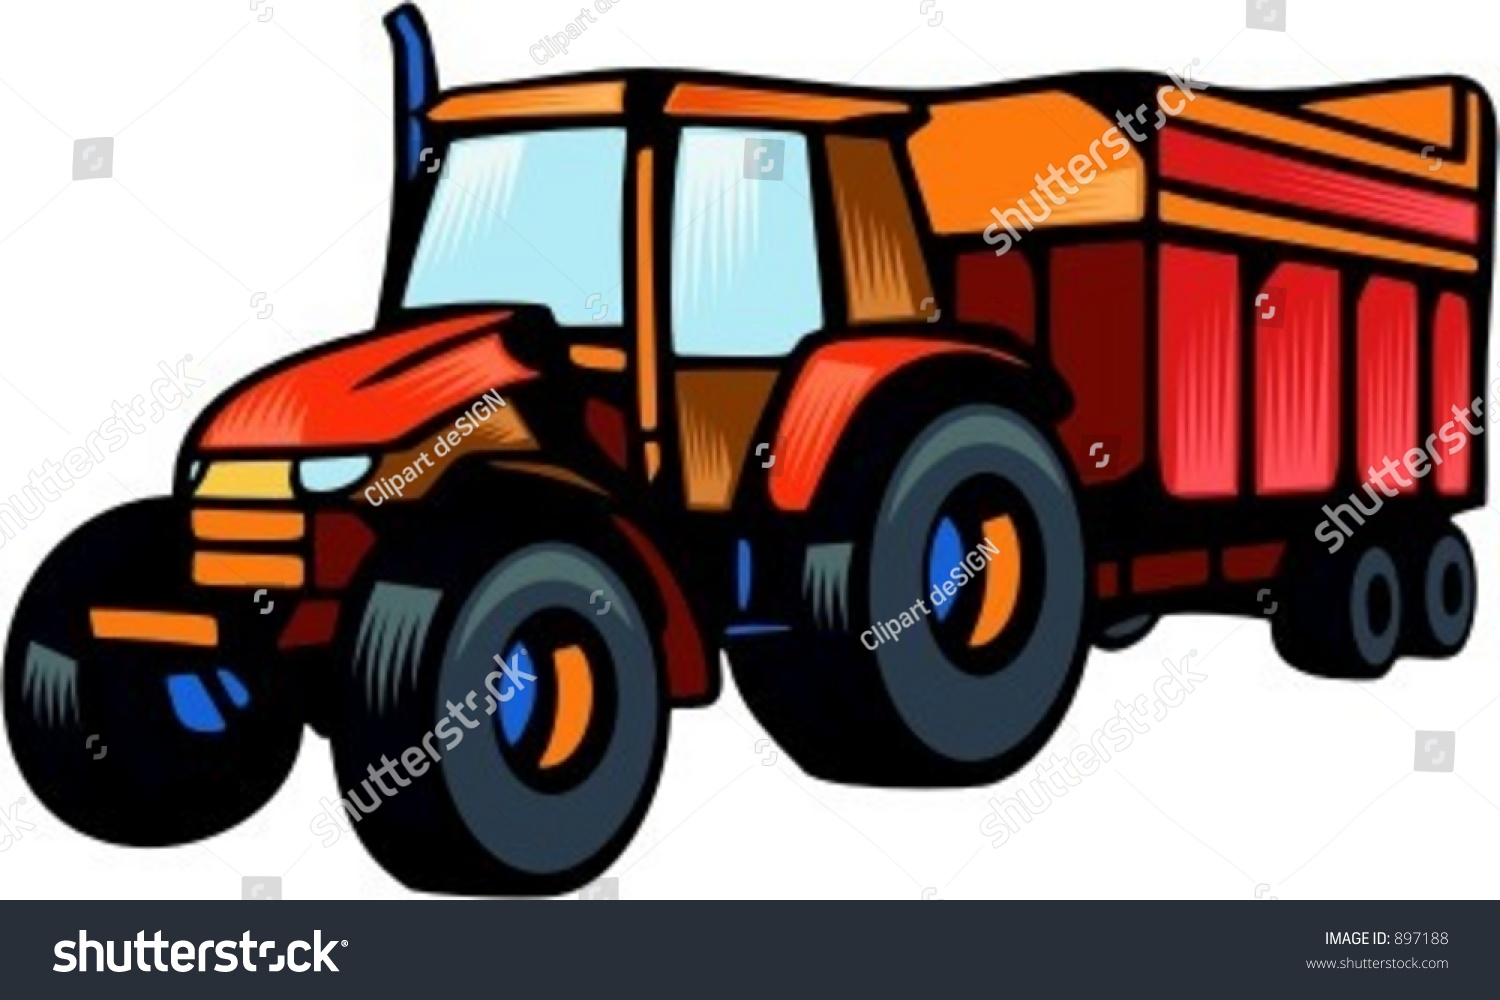 Tractor Trailer Clip Art : Tractor carrying trailervector illustration stock vector